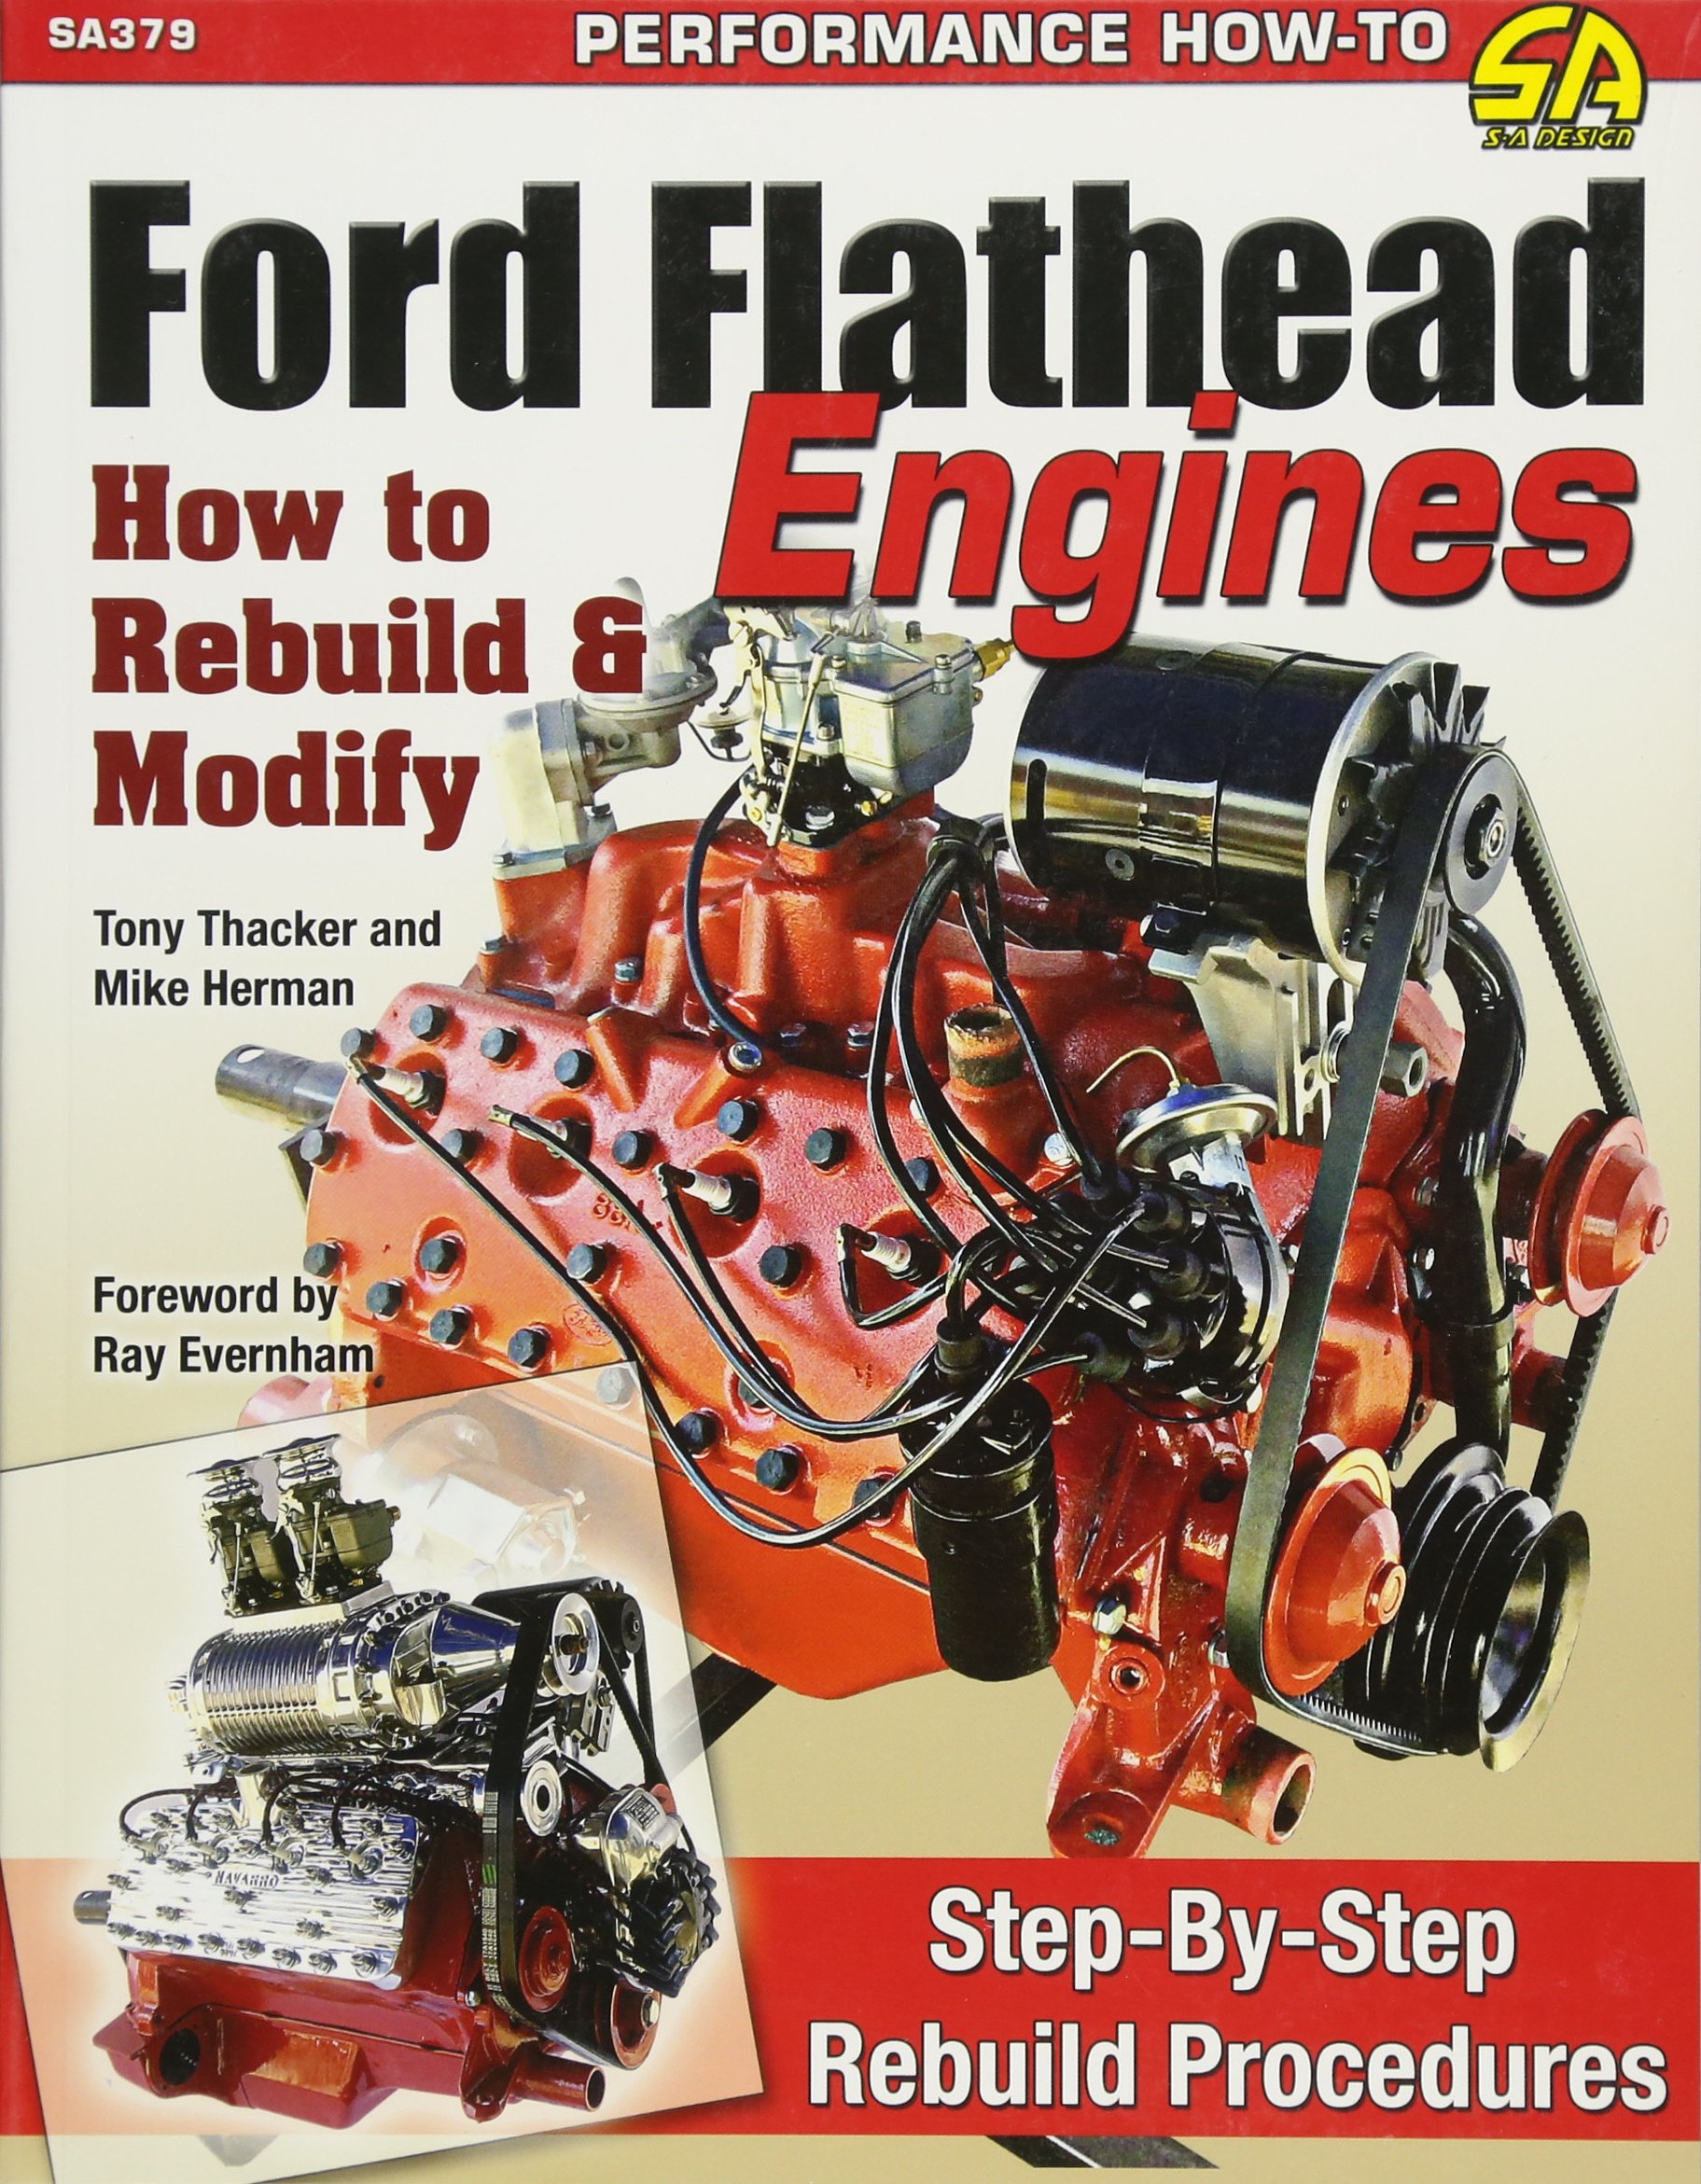 Ford Flathead Engines: How to Rebuild & Modify: Tony Thacker, Mike Herman:  9781613252871: Amazon.com: Books